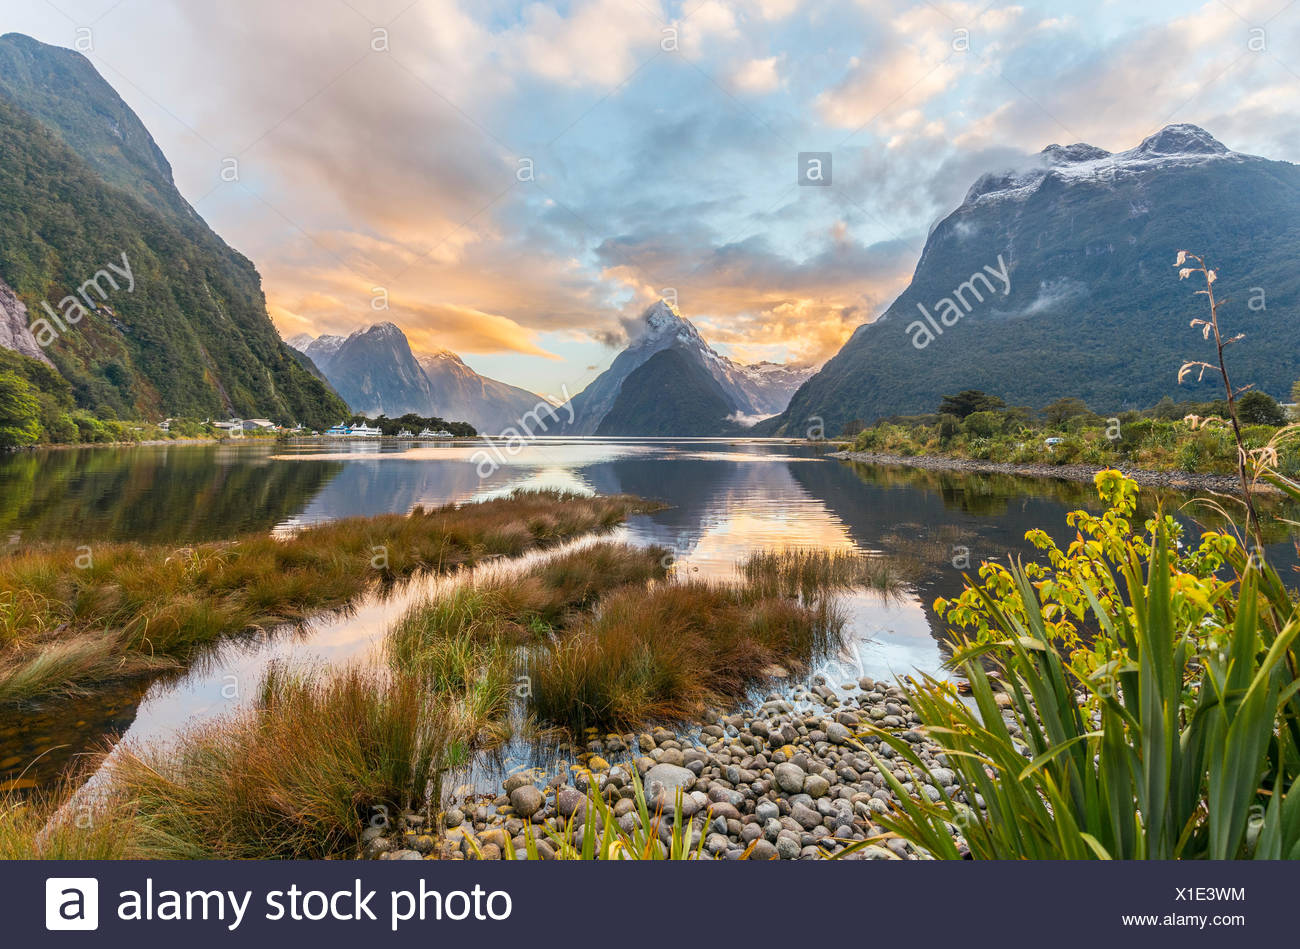 Mitre Peak, Sunset, Milford Sound, Fiordland National Park, Te Anau, Southland Region, Southland, New Zealand, Oceania - Stock Image